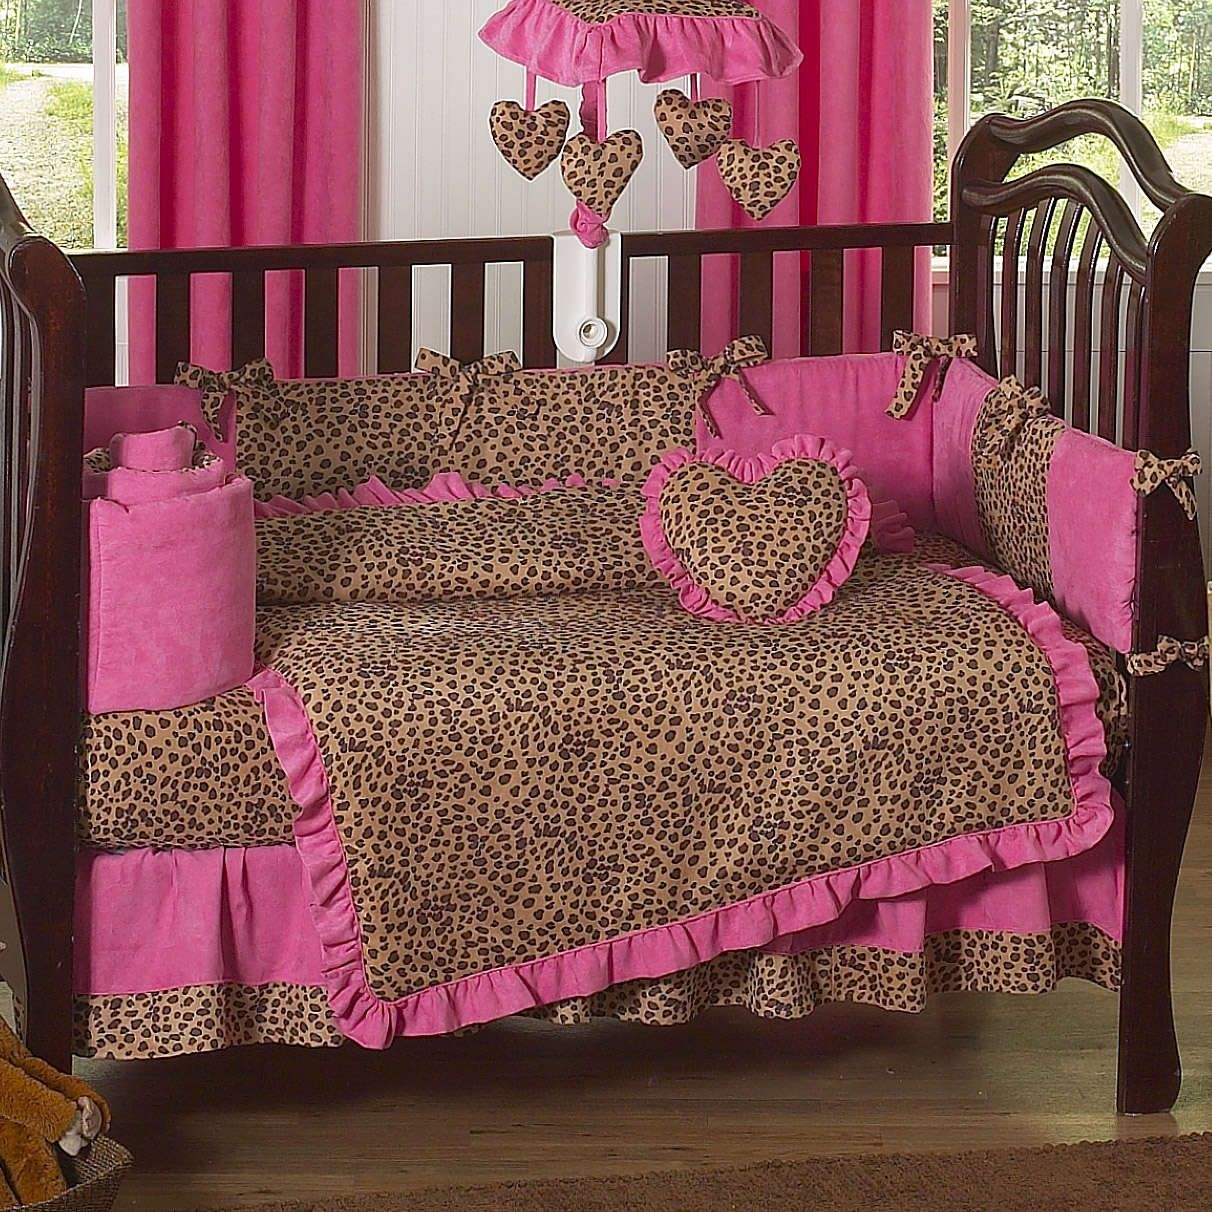 Leopard Baby Shower Cakes Cheetah Hot Pink And Print 9 Piece Crib Bedding Set